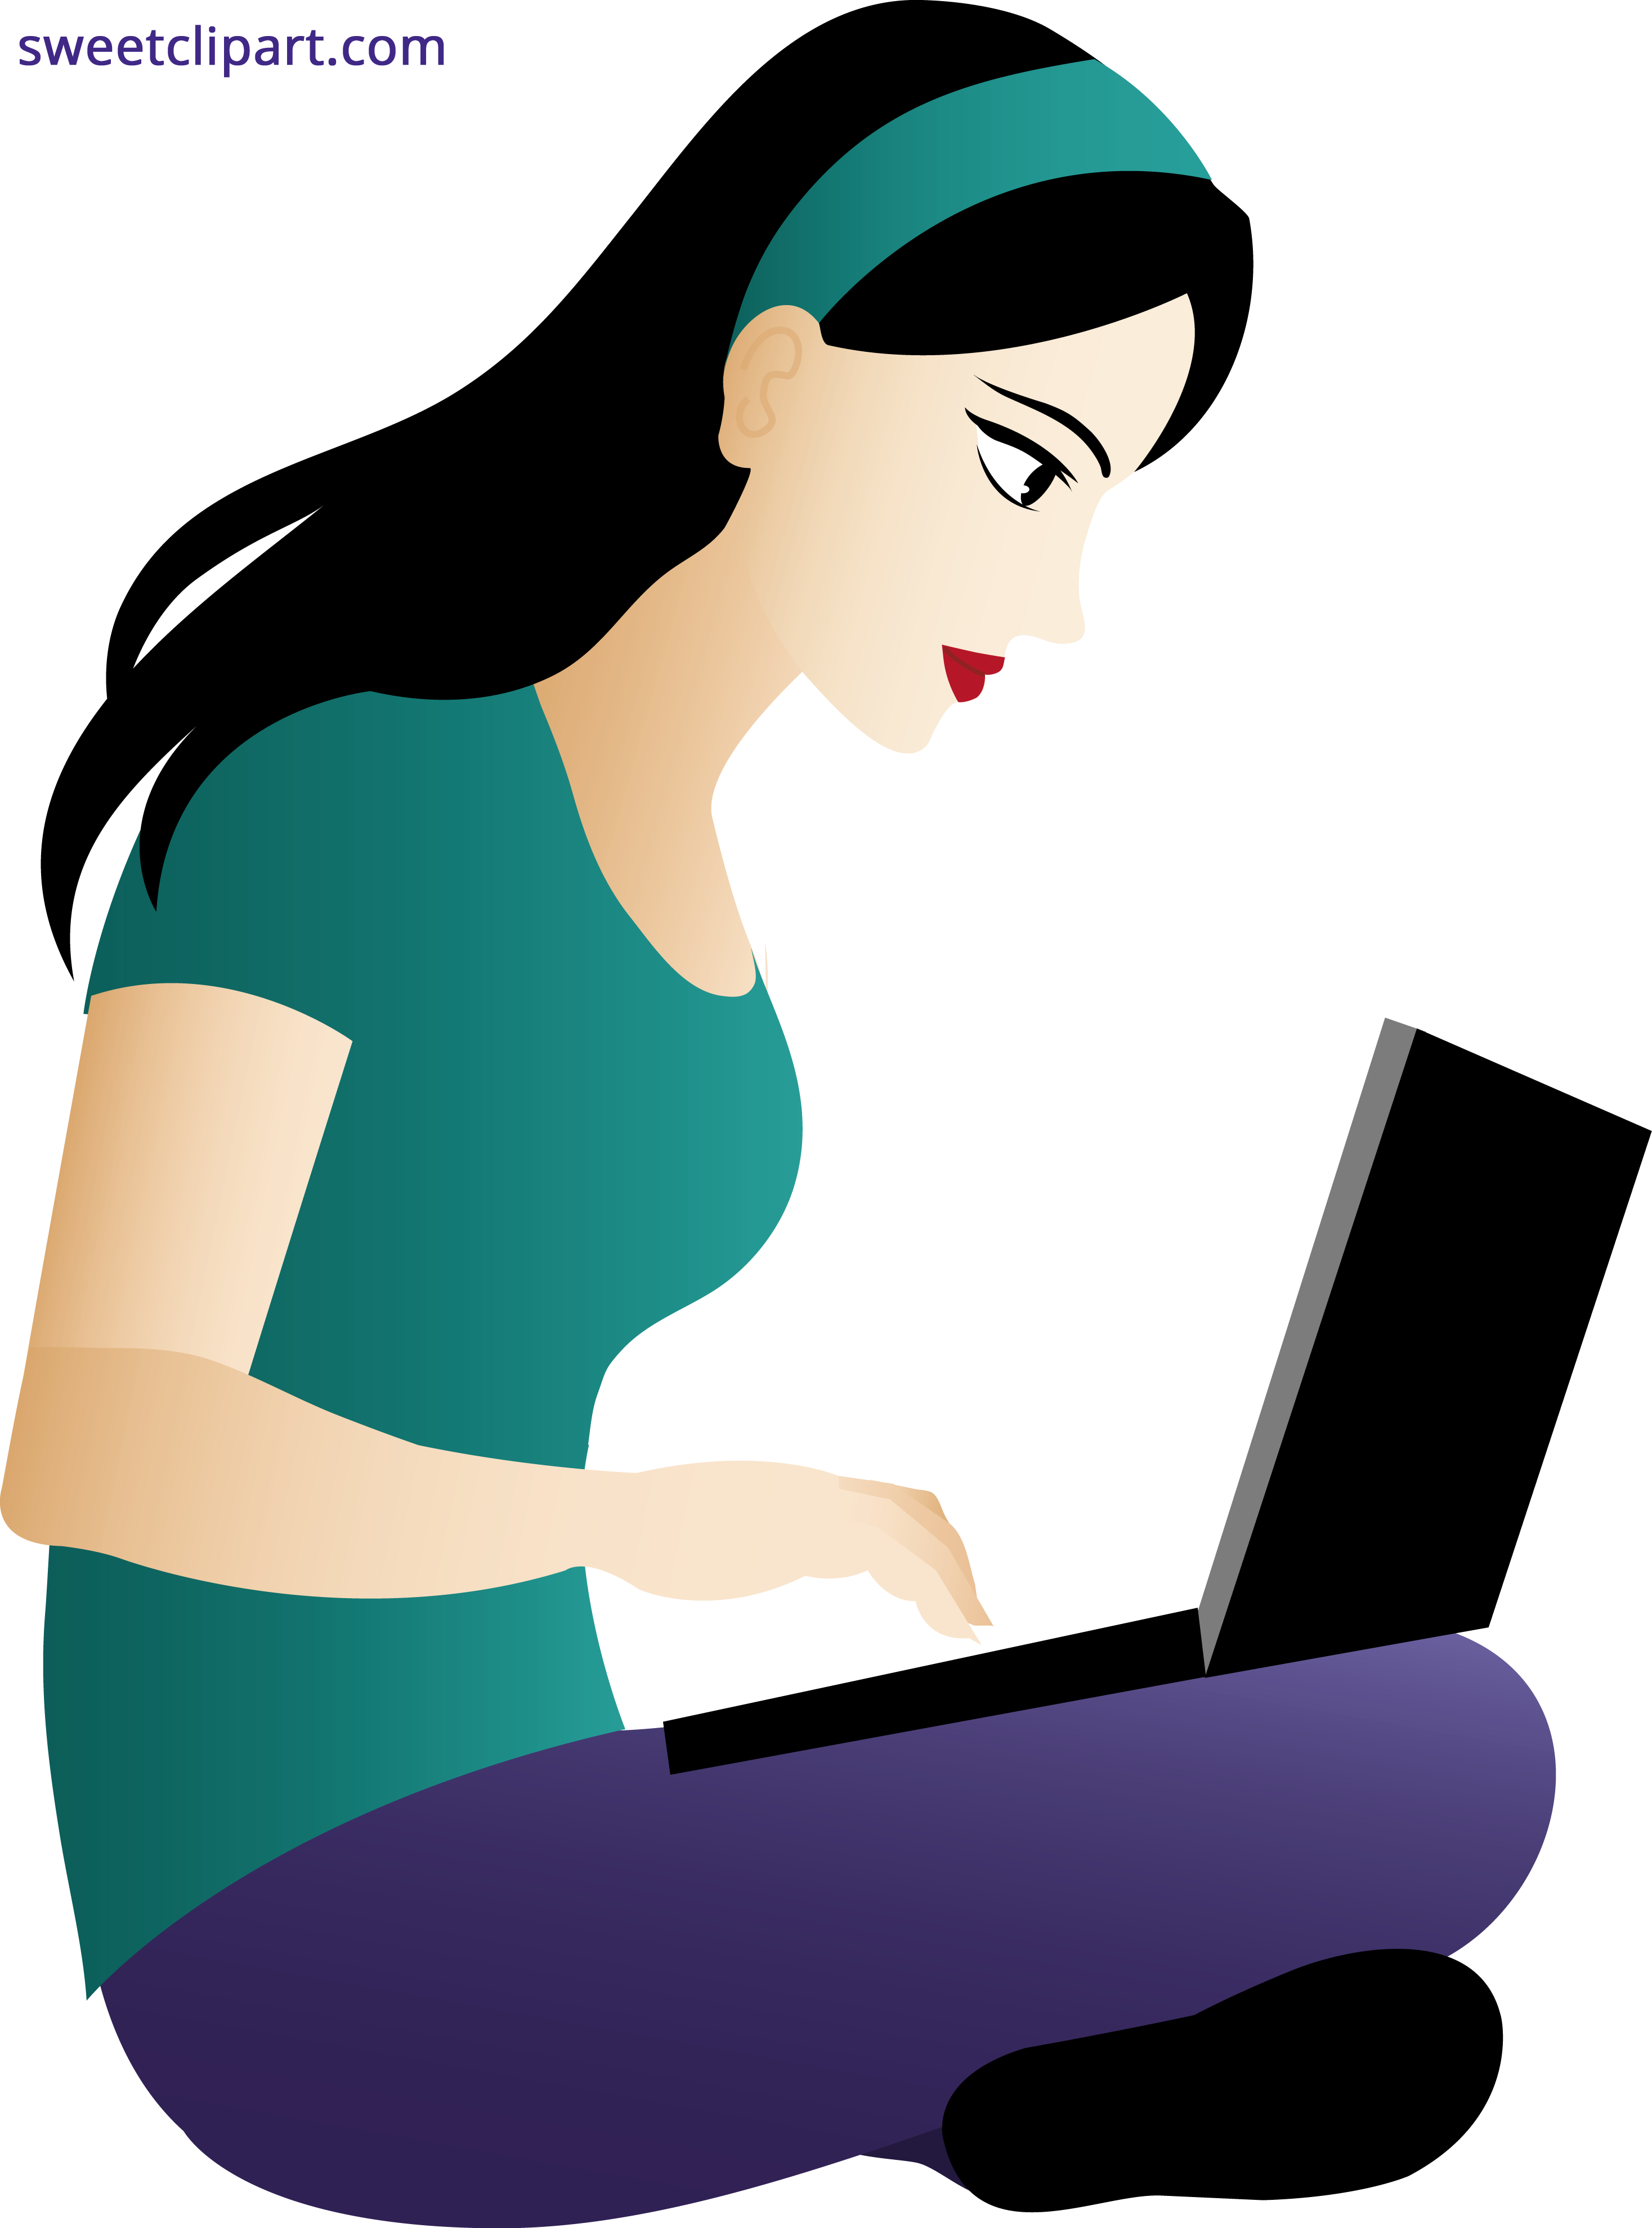 Sitting woman clipart clip royalty free download Woman Using Laptop Clipart - Sweet Clip Art clip royalty free download